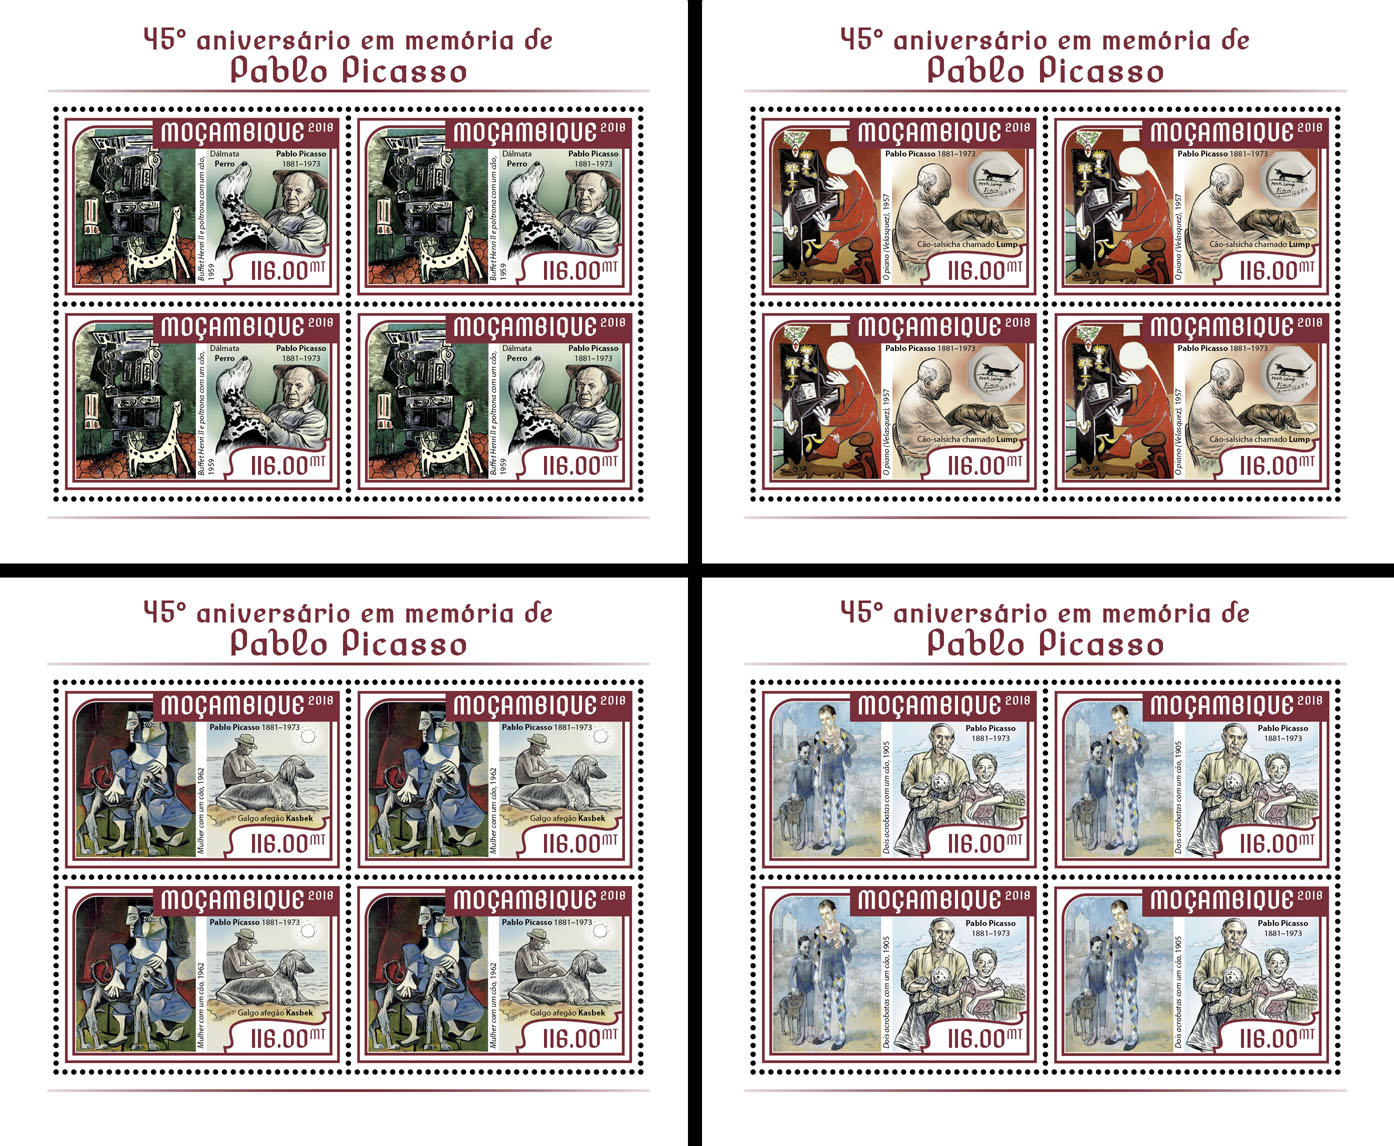 Pablo Picasso (4 sets of 4 stamps) - Issue of Mozambique postage Stamps